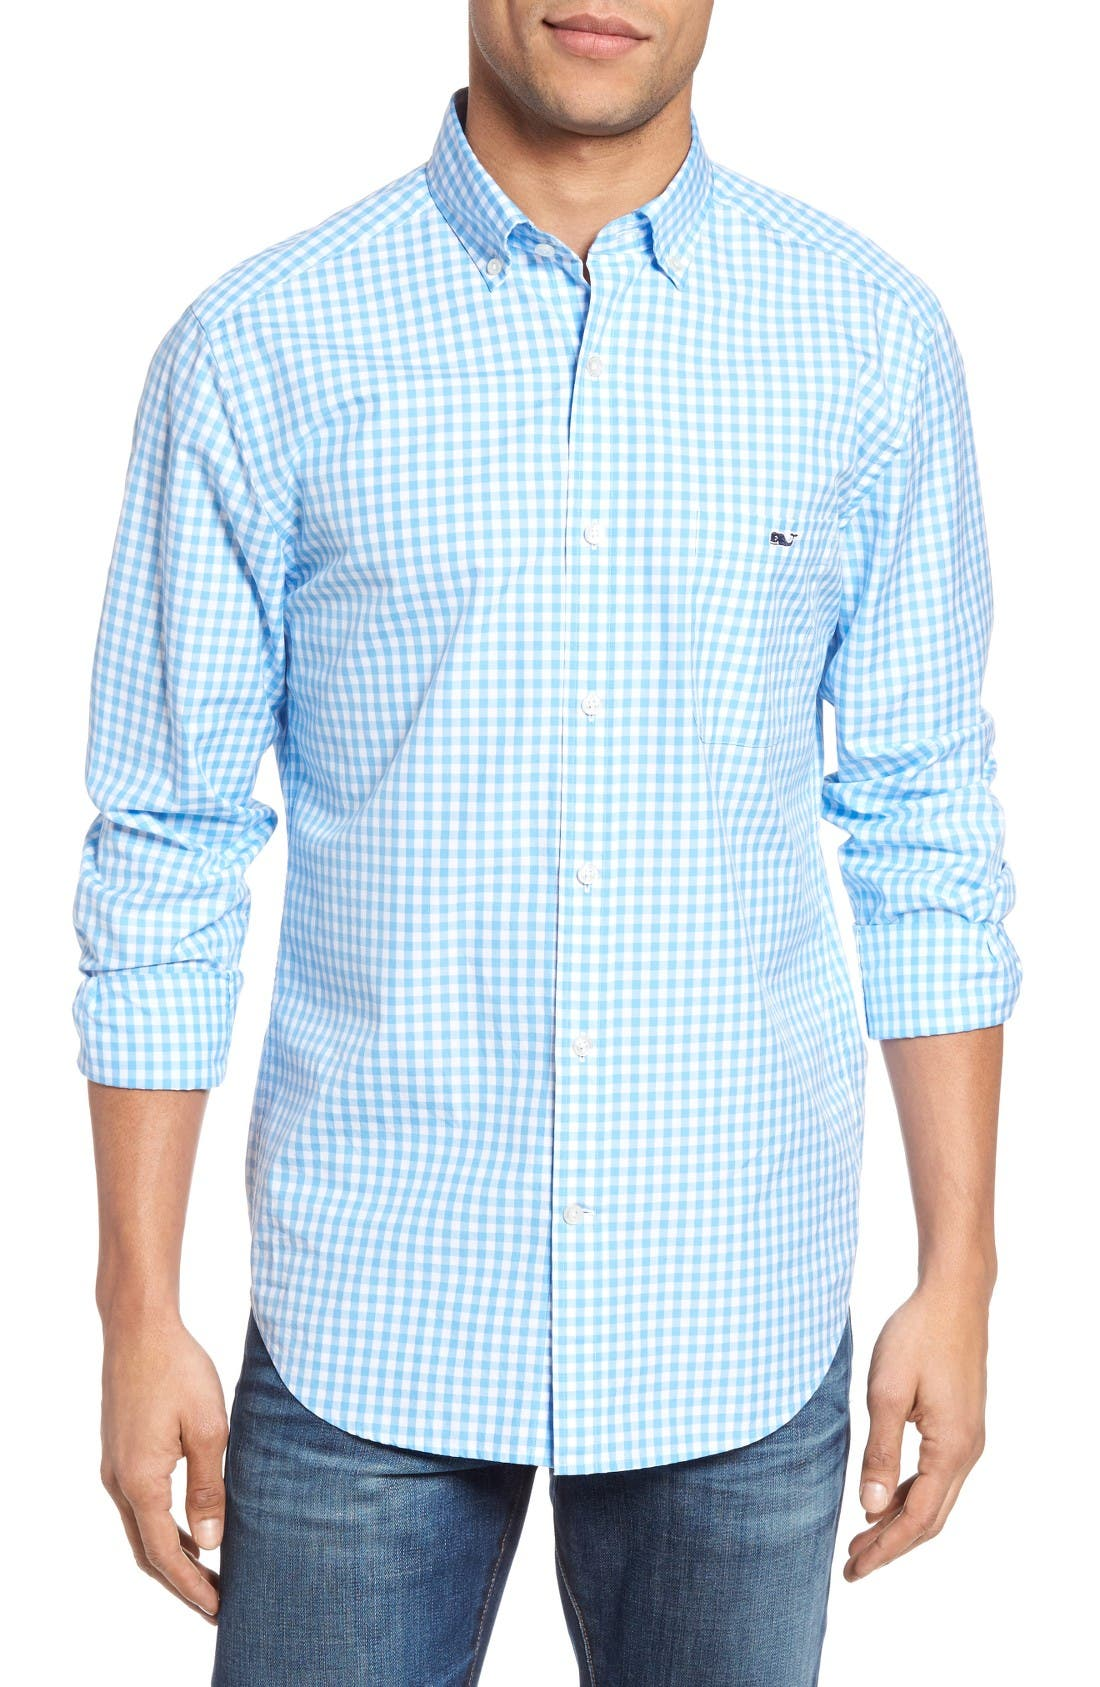 Elmont Gingham Sport Shirt,                             Main thumbnail 1, color,                             Ocean Breeze Blue